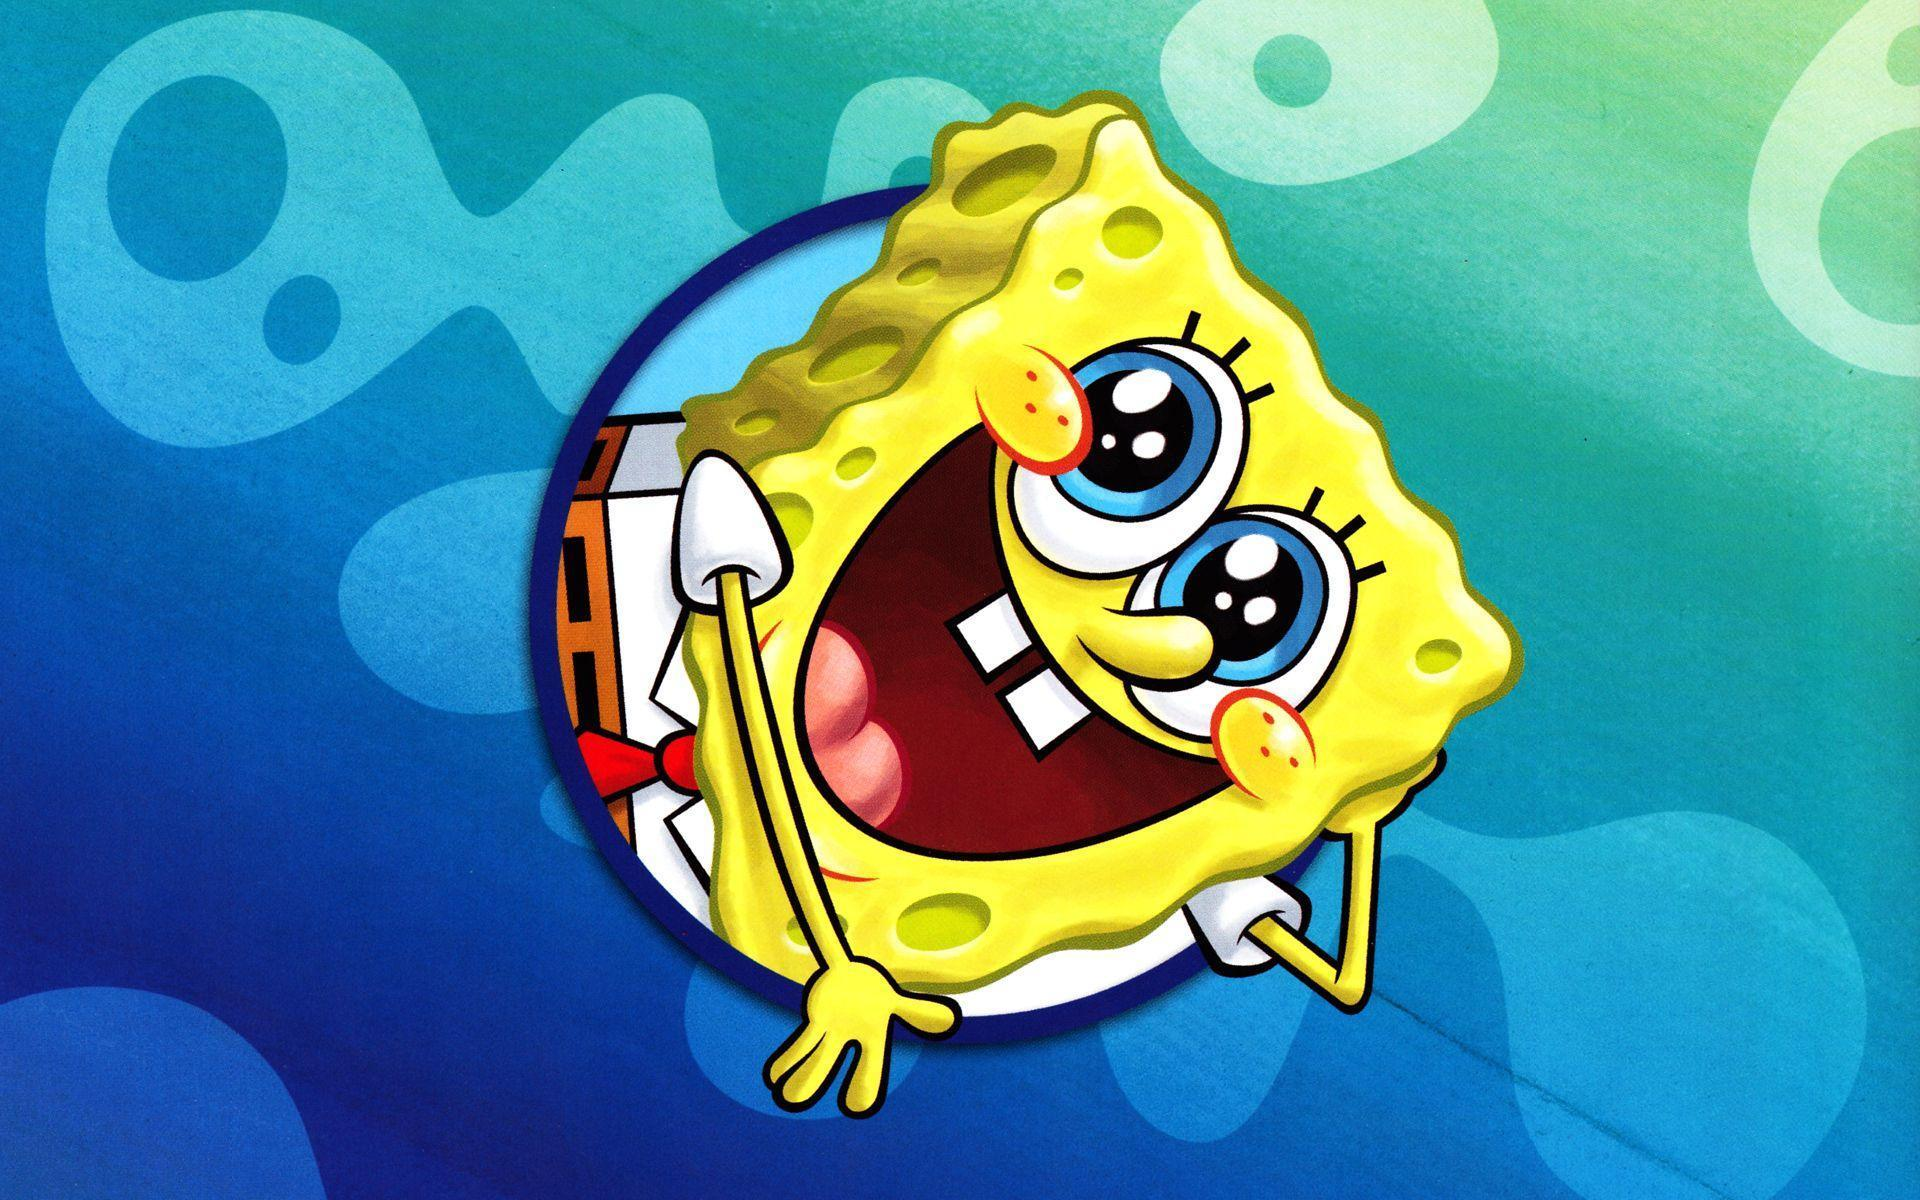 Spongebob Wallpapers HD | HD Wallpapers, Backgrounds, Images, Art ...